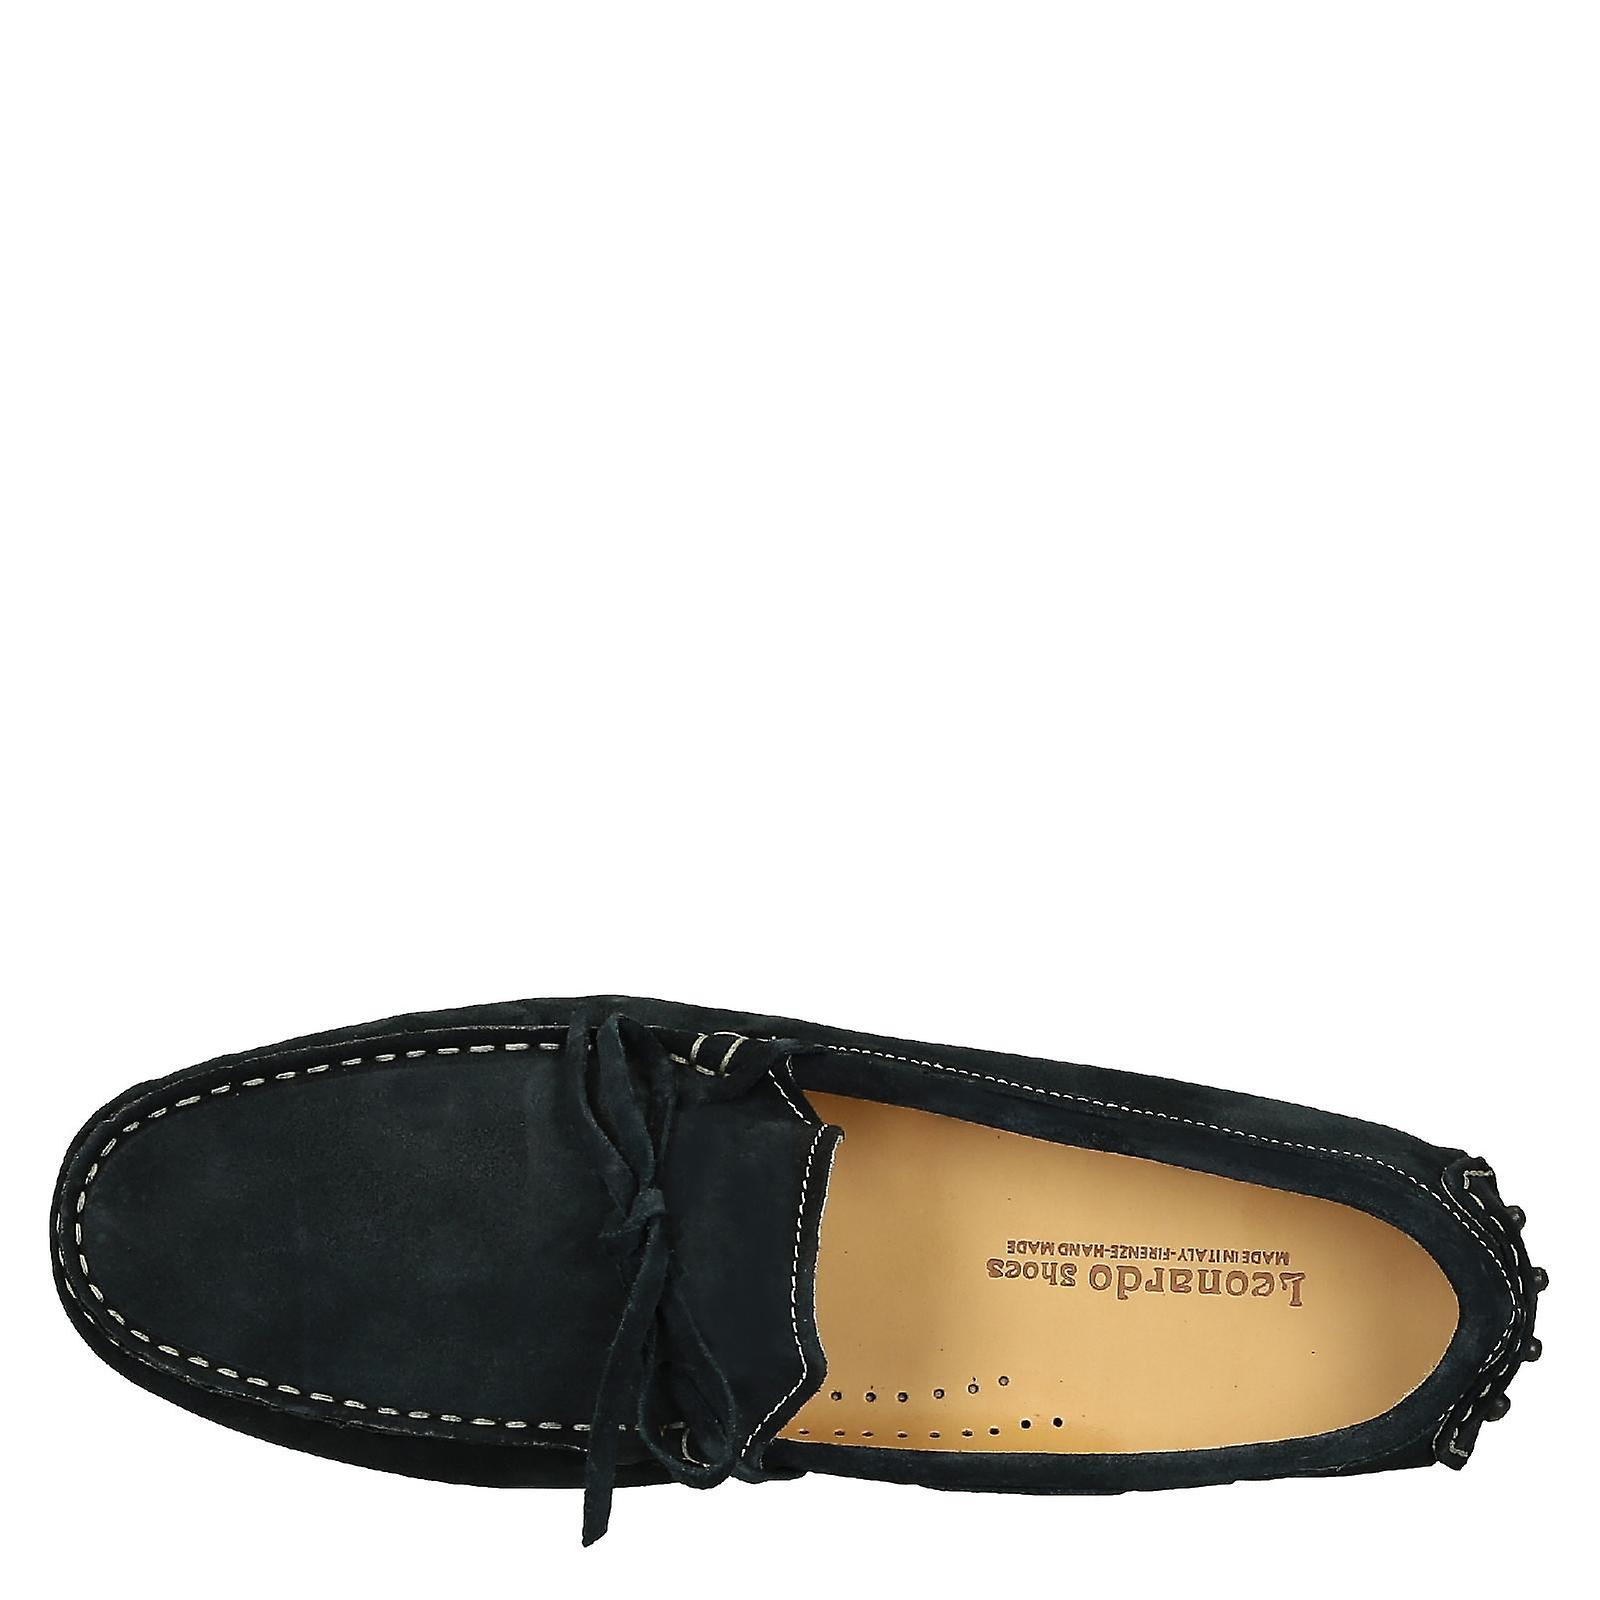 Men's driving moccasins in blue suede leather